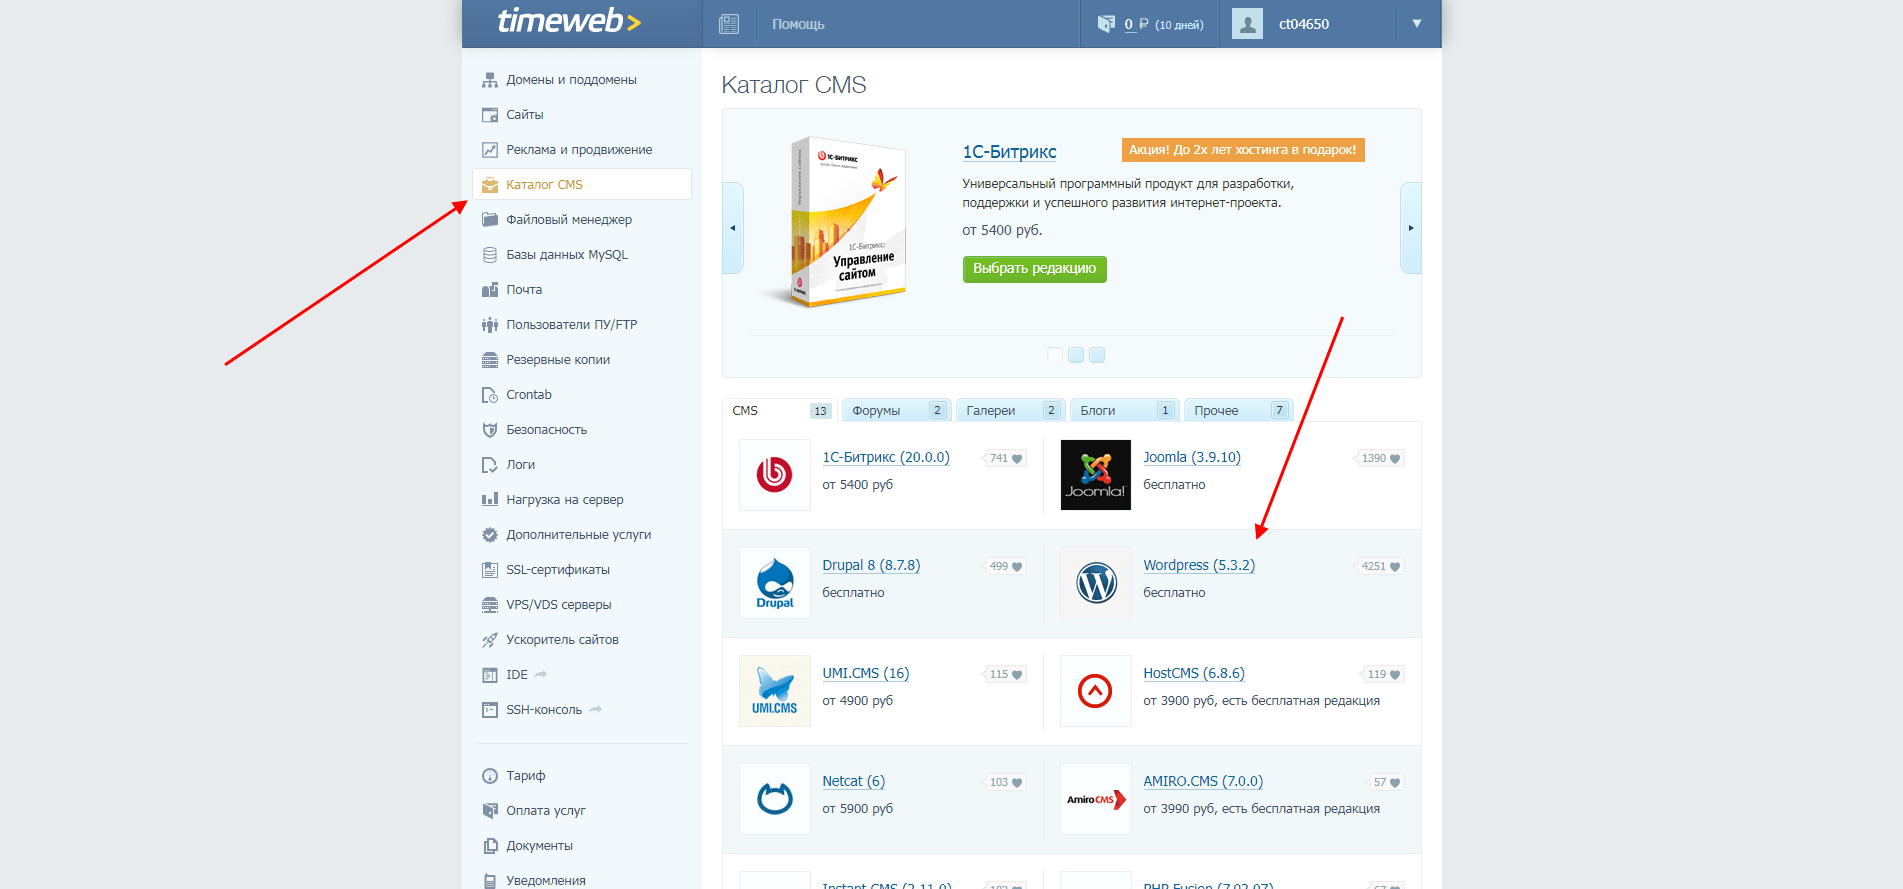 Как на Timeweb установить WordPress